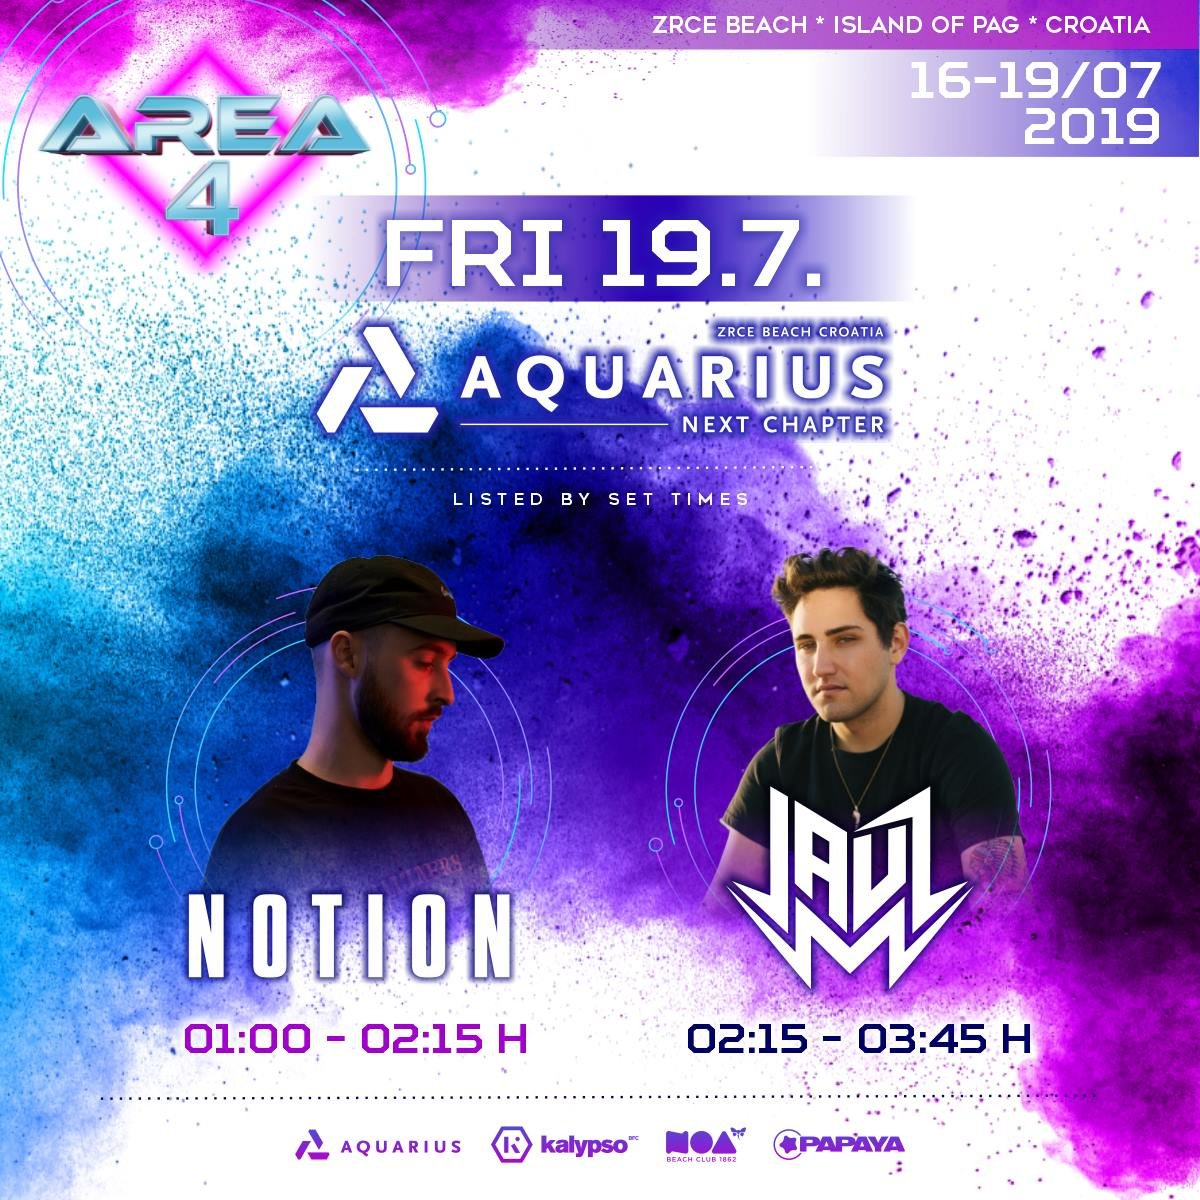 19.07. Notion a Jauz @ Aquarius klub, pláž Zrće